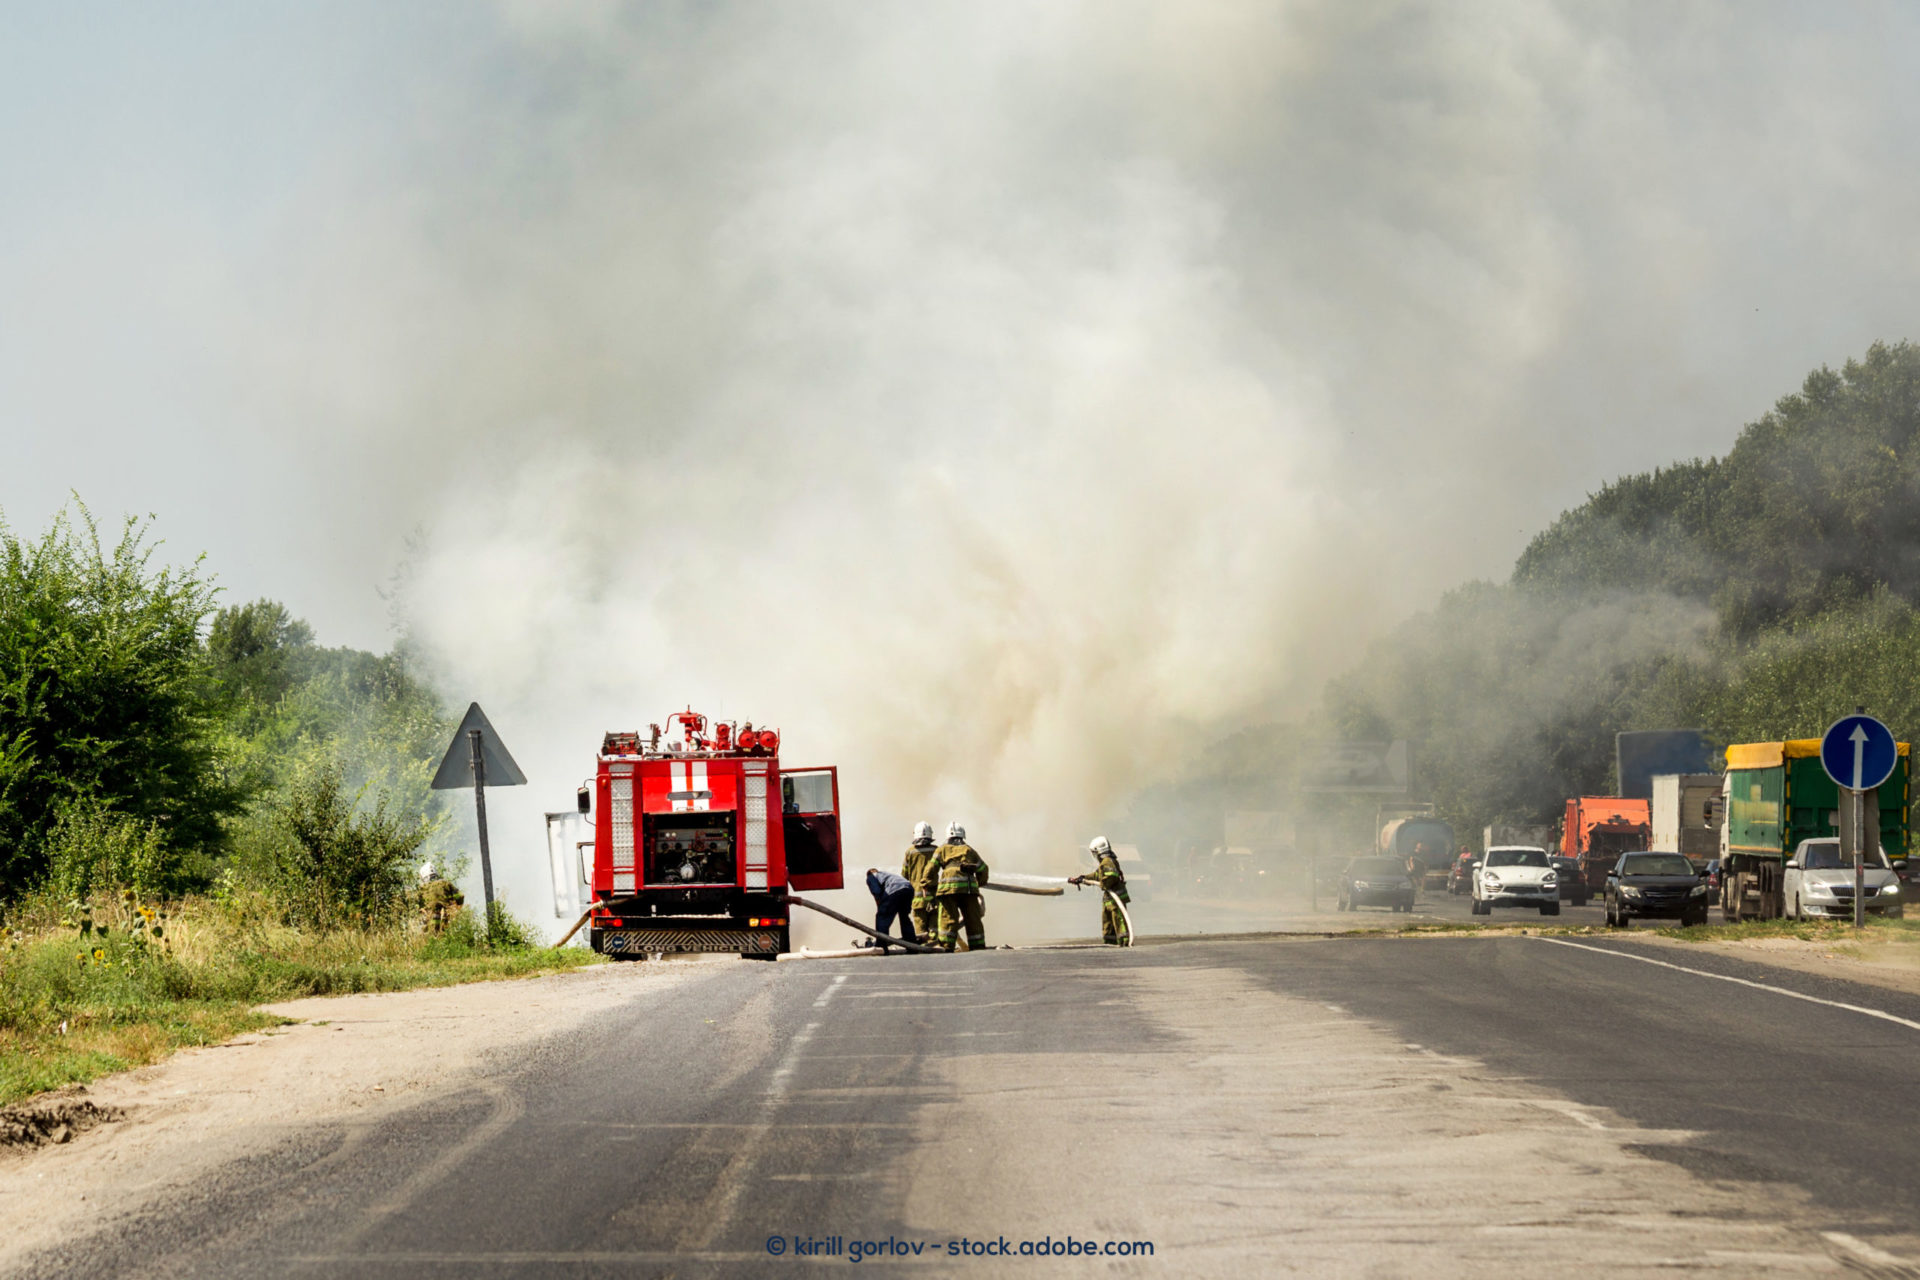 Photo description: firefighters with a fire truck.